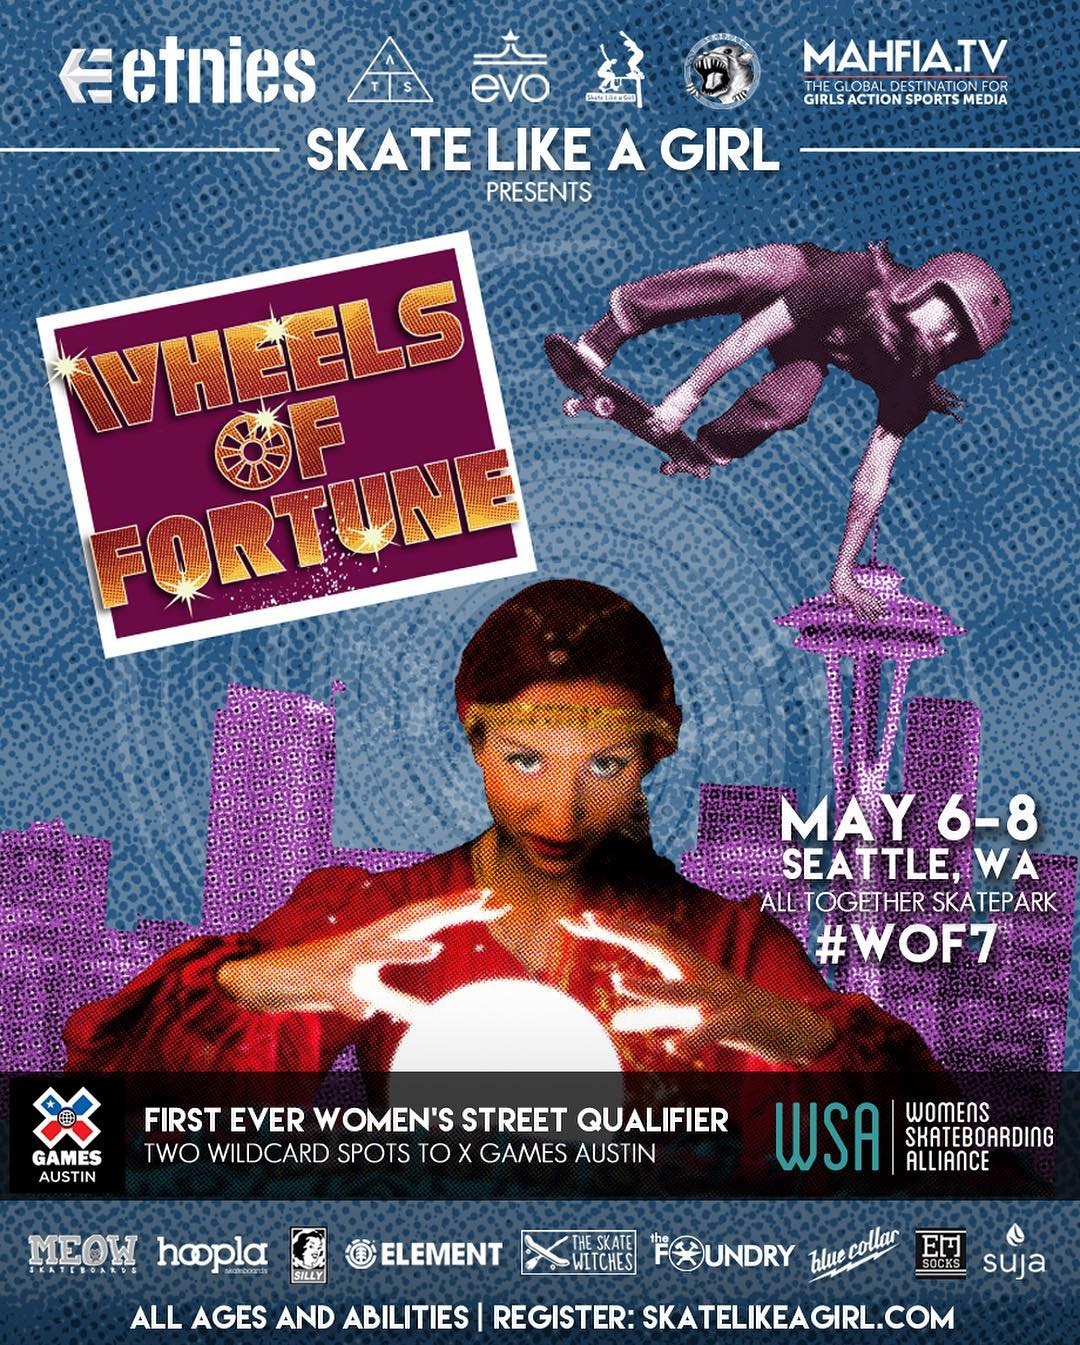 More history being made! @thealliance_wsa teams up @SkateLikeAGirl and #WOF7 to launch the first ever global women's skateboarding qualifier for @XGames Women's Street in Seattle! Registrations in skatelikeagirl.com  #skatelikeagirl #ladiesofshred...